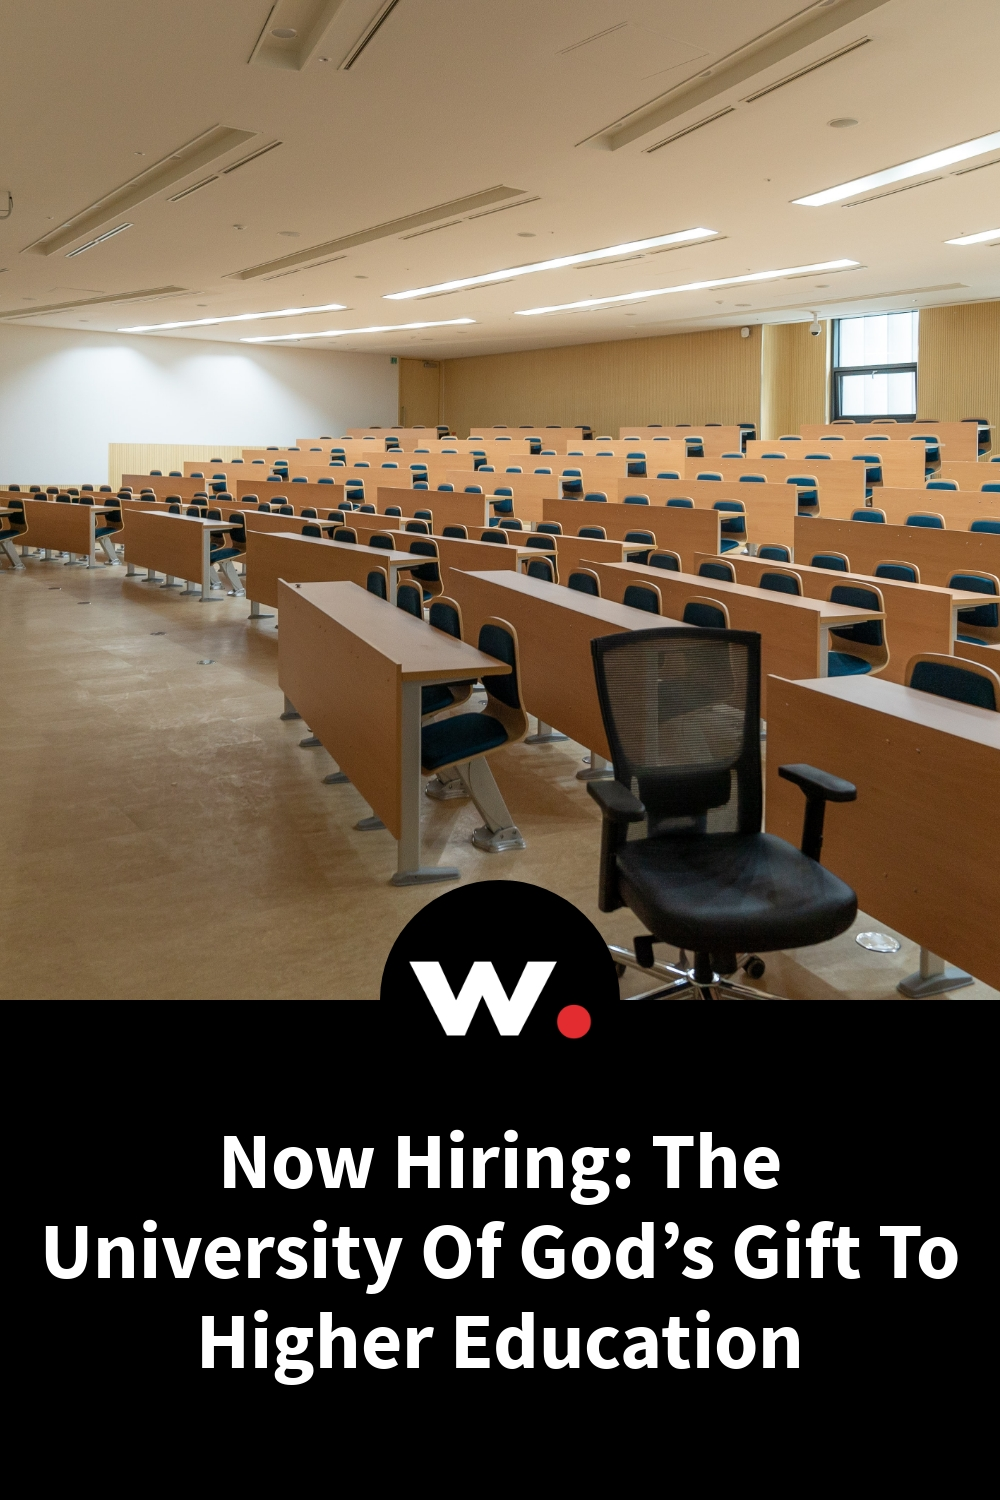 Now Hiring: The University Of God's Gift To Higher Education